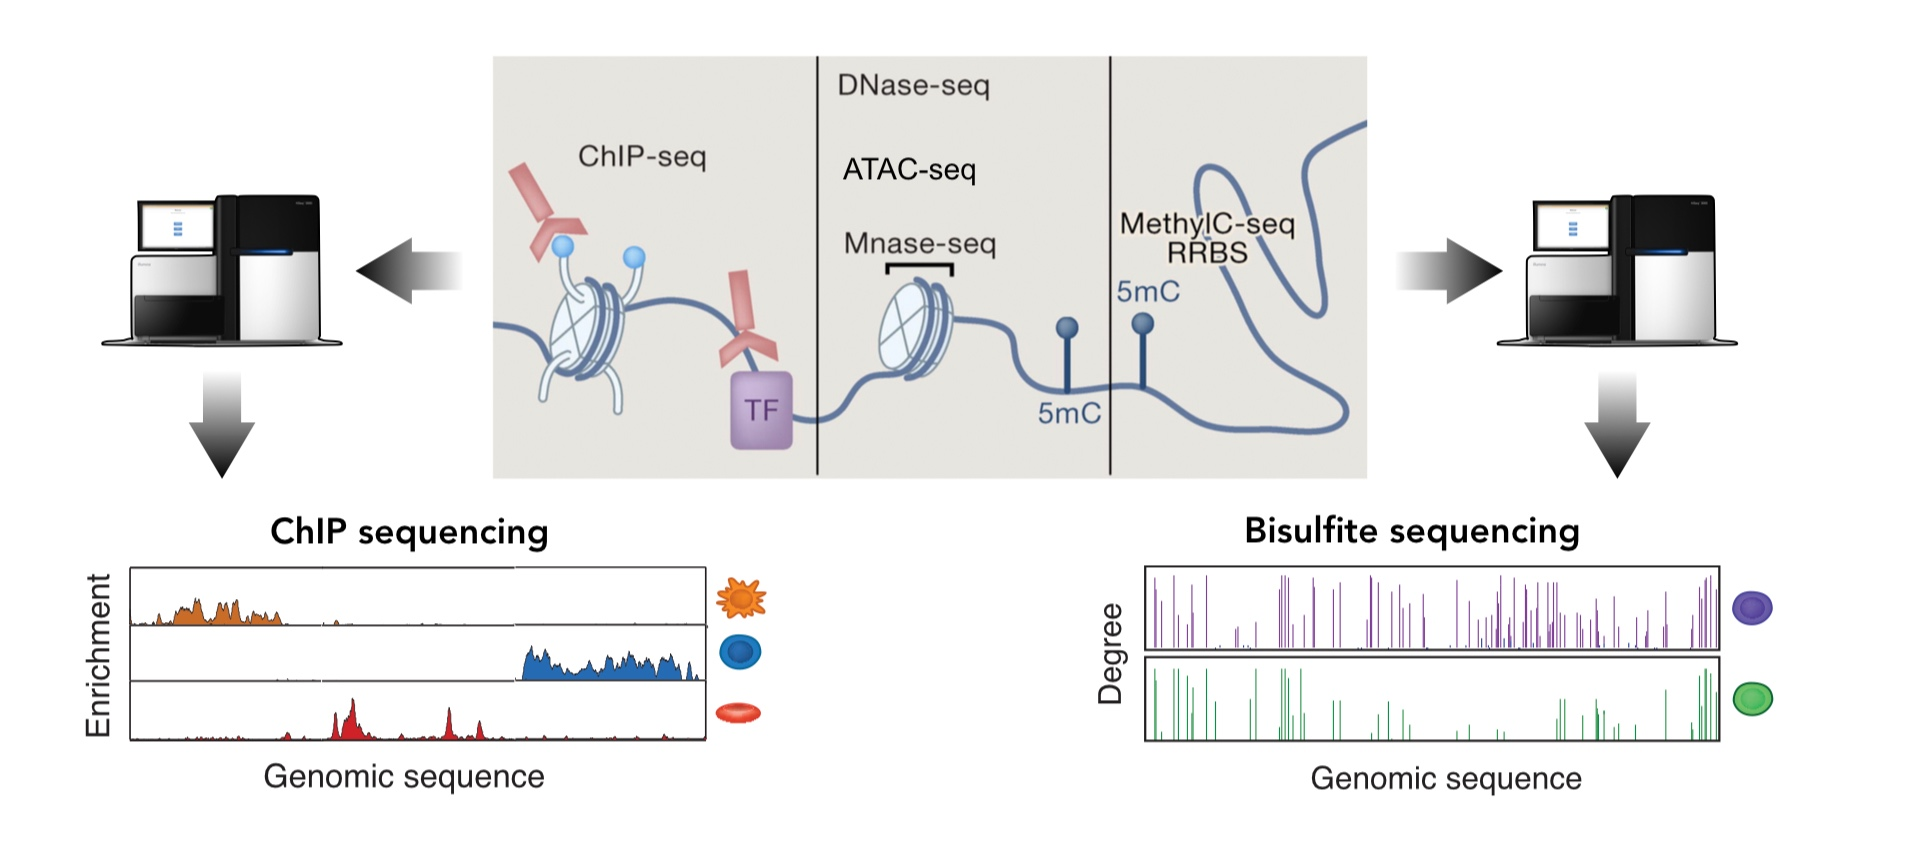 - We use next-generation sequencing technology to profile epigenetic modifications at genome-wide levels.